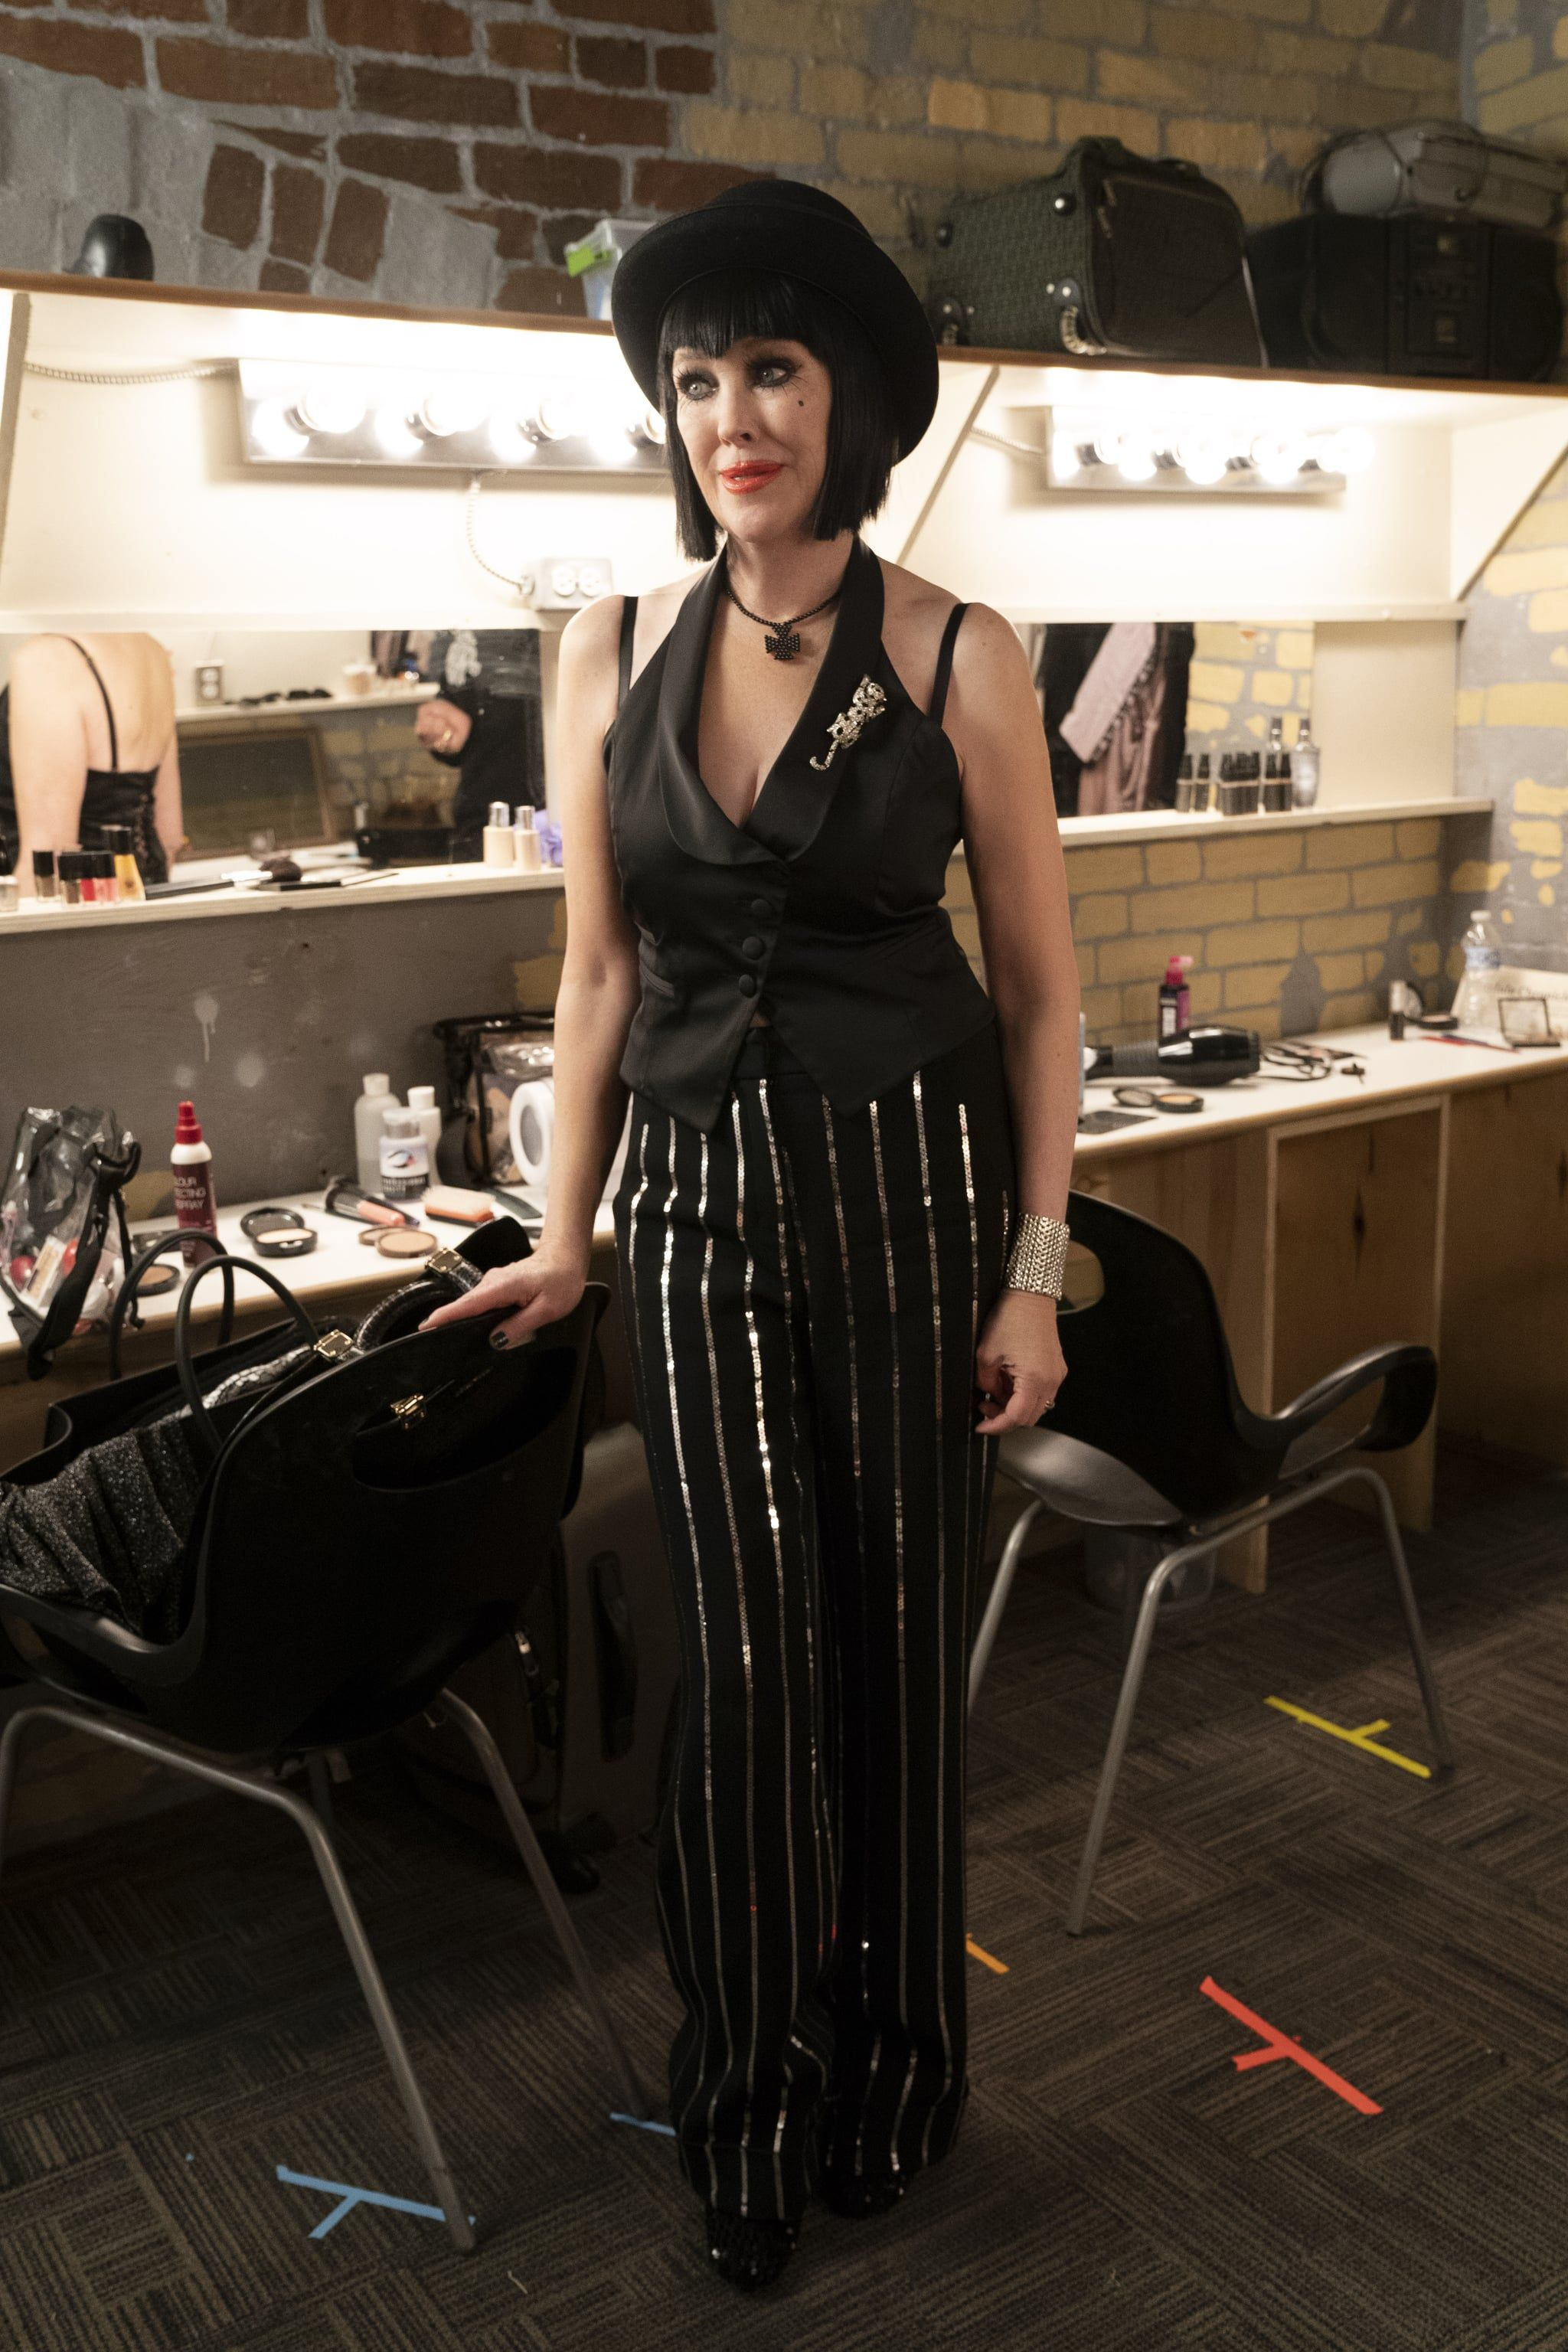 Moira as Sally Bowles in 2020 | Schitts creek, Tv show outfits, Fashion tv